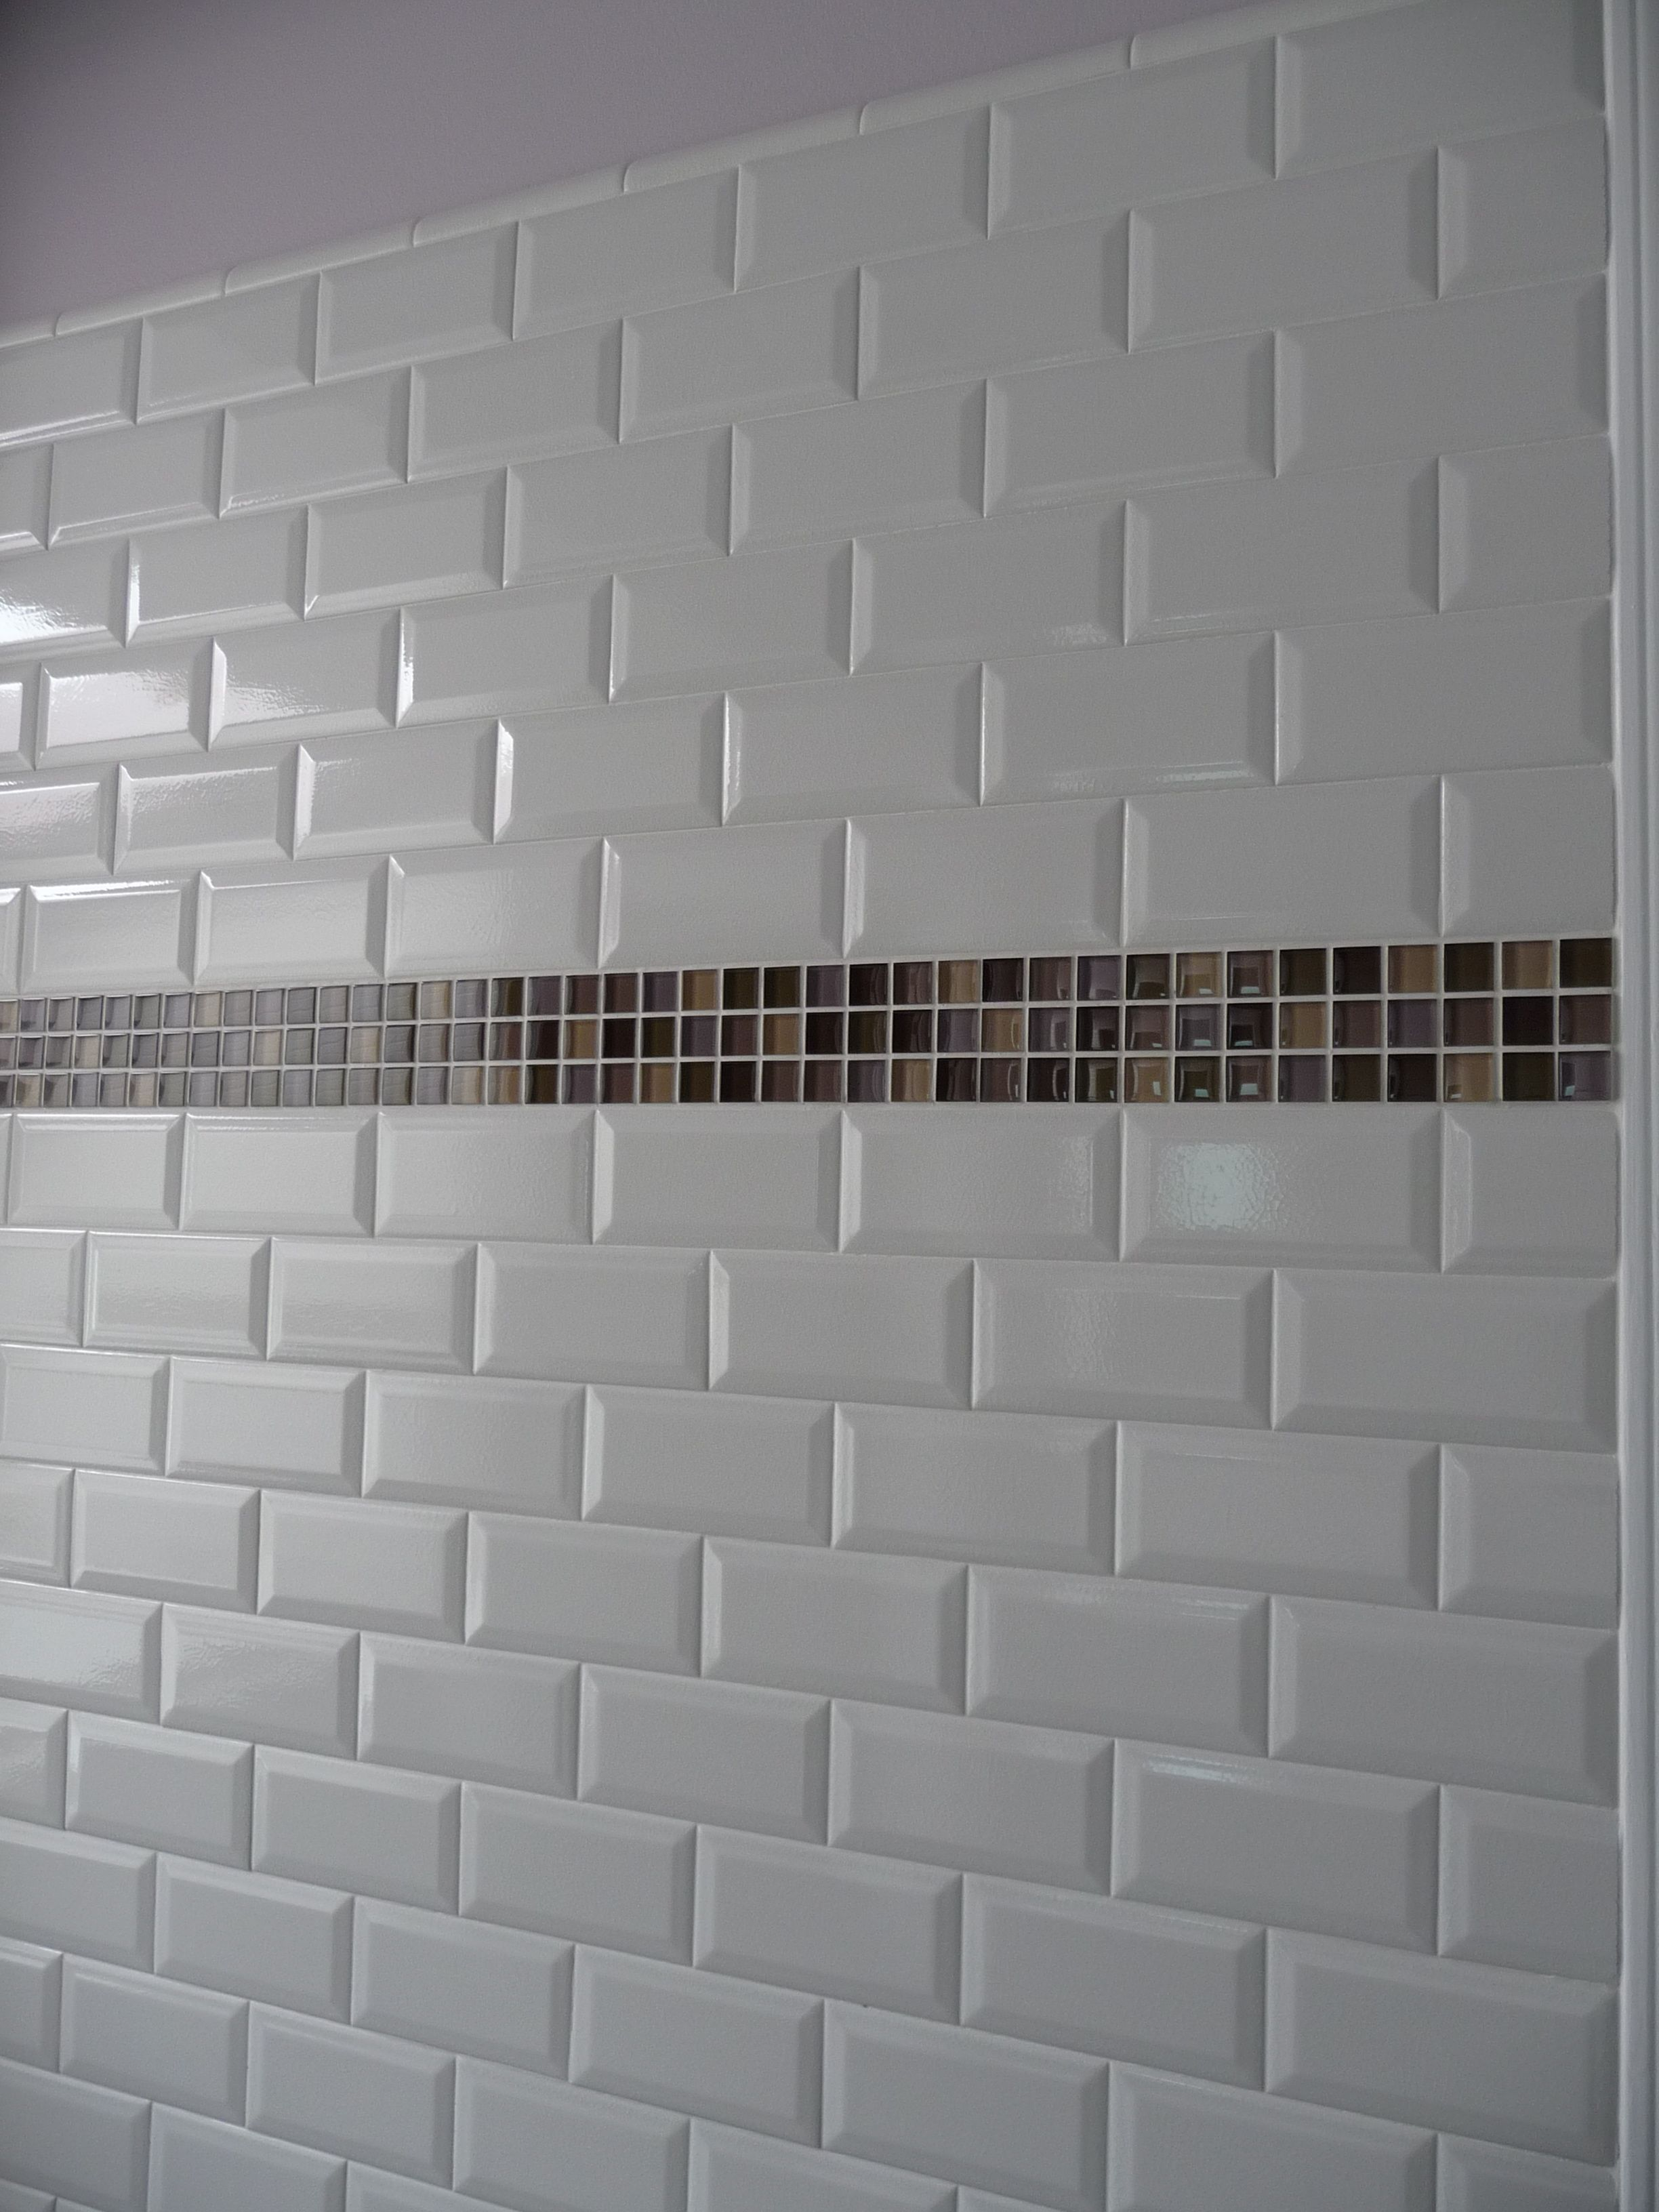 Glass tiles bathrooms kitchens glass tiles kitchen for Bathroom ideas using subway tile